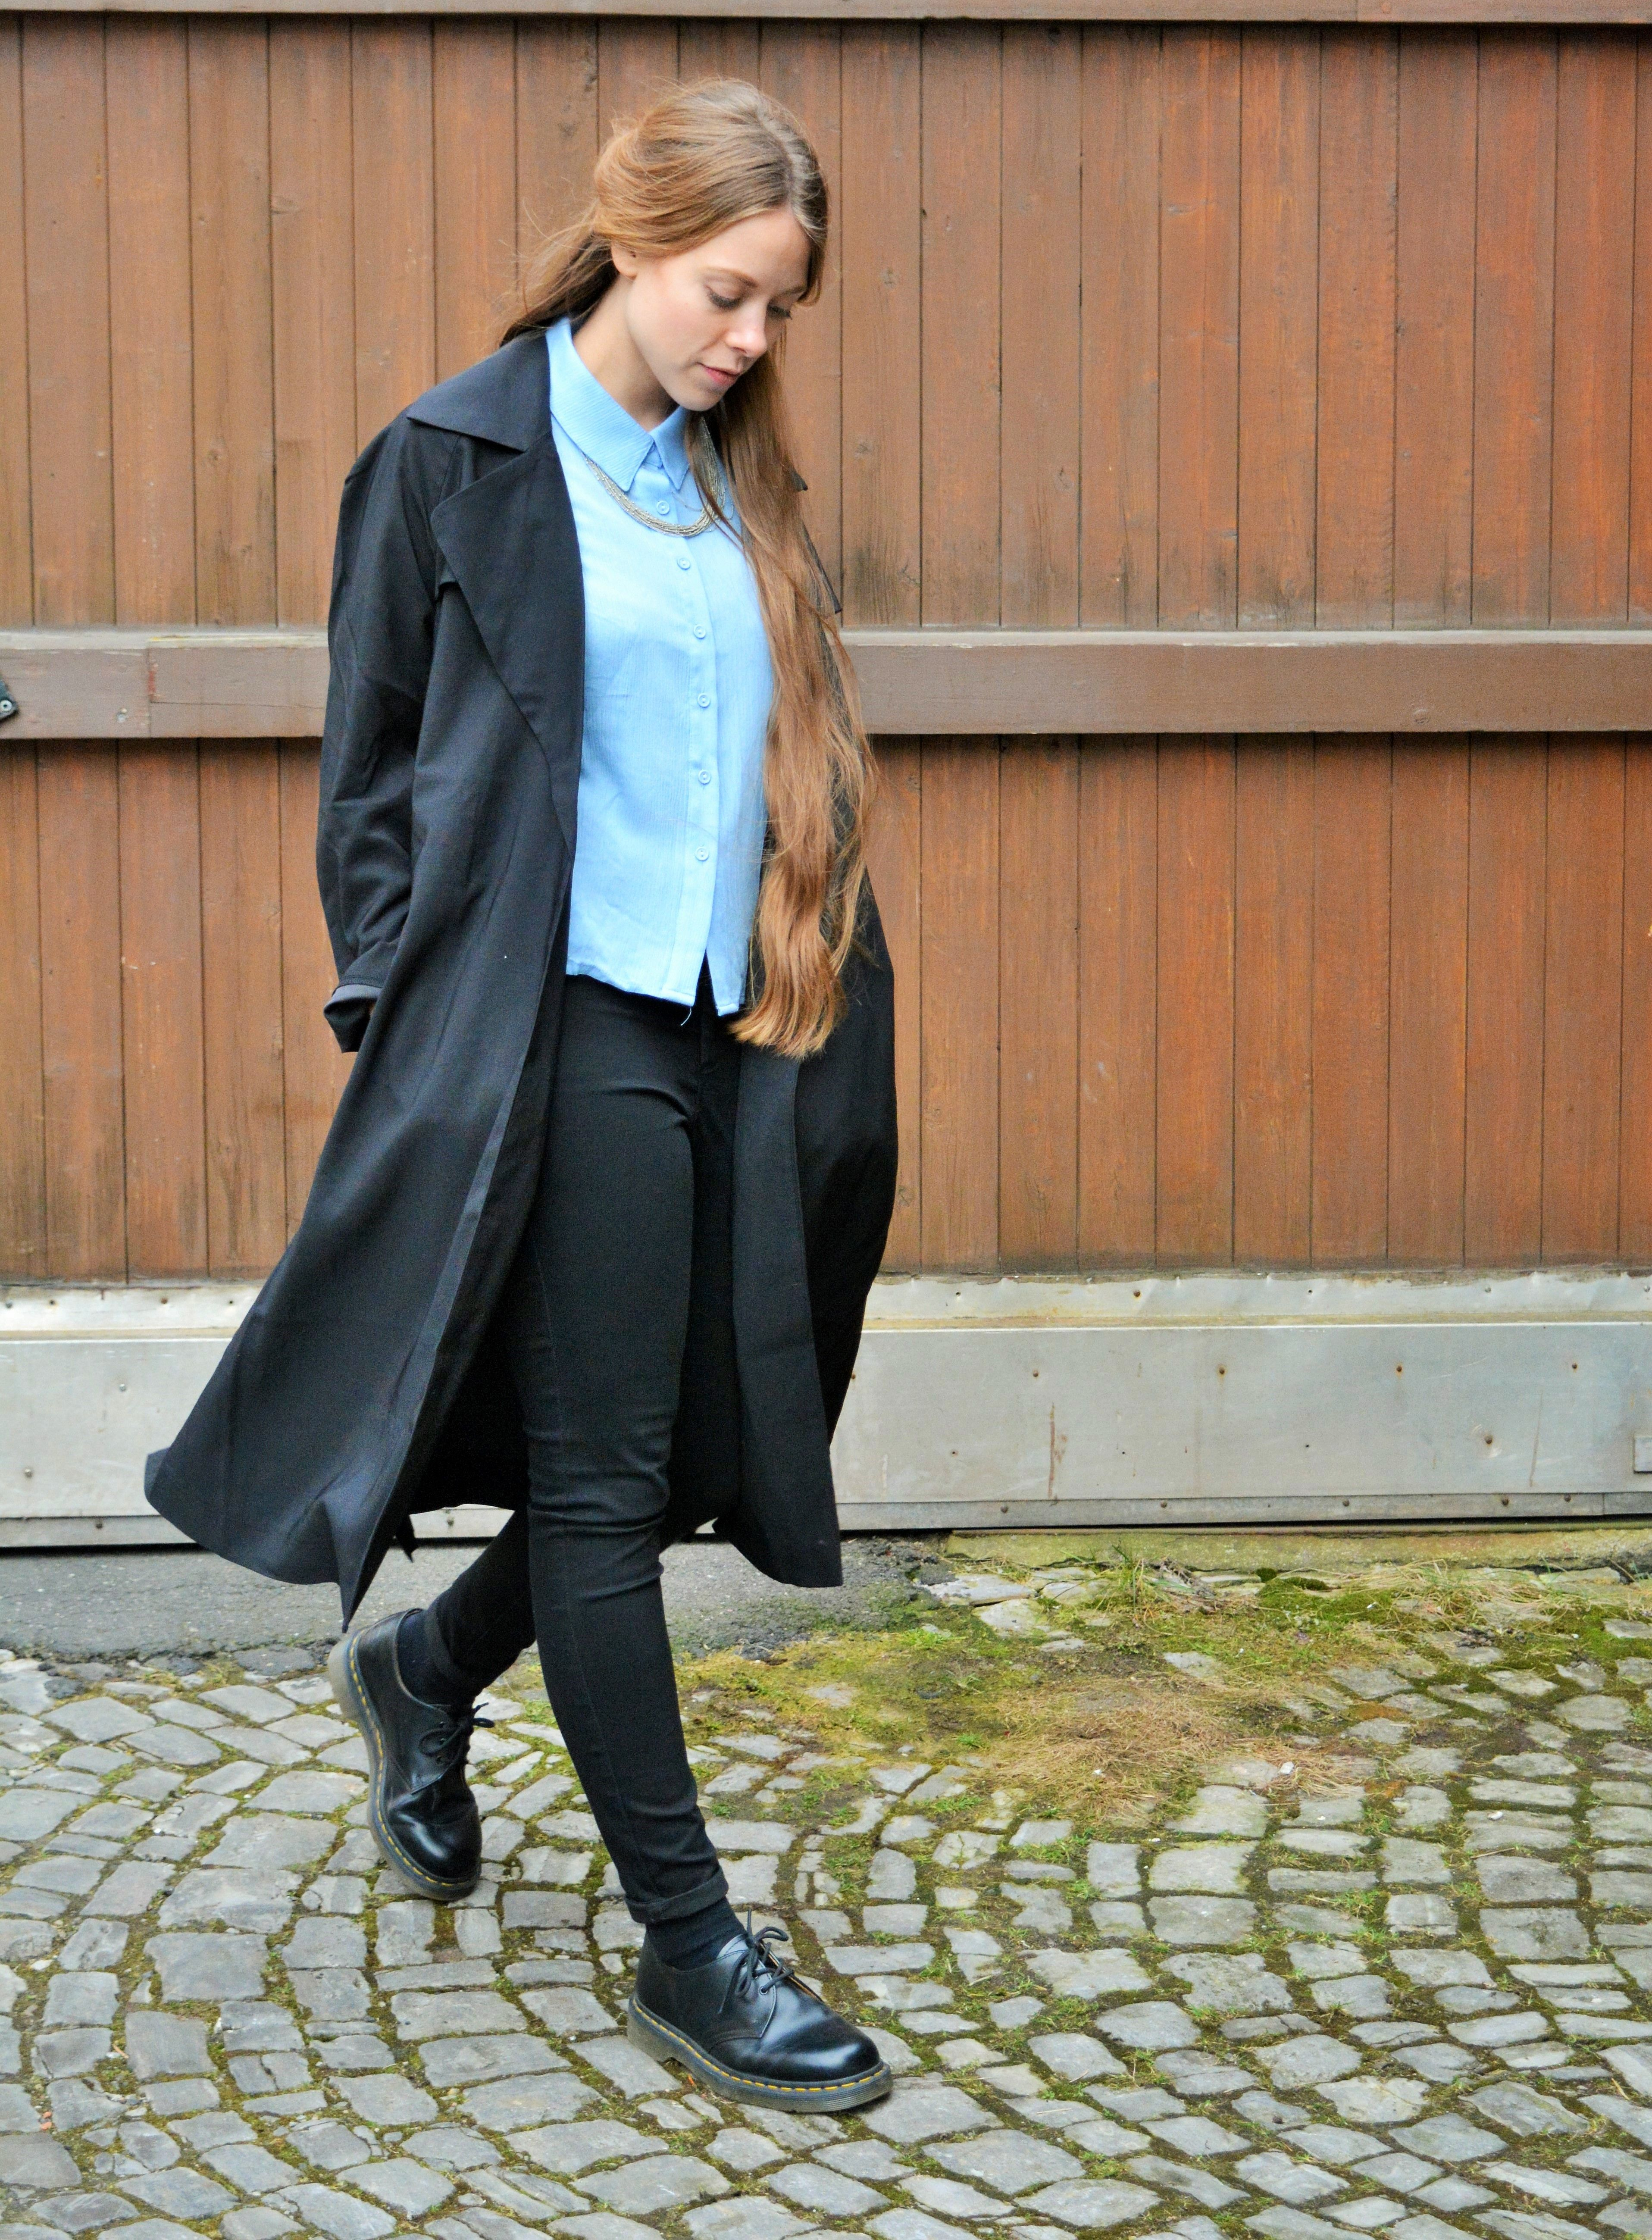 Trenchcoat & blue button up shirt